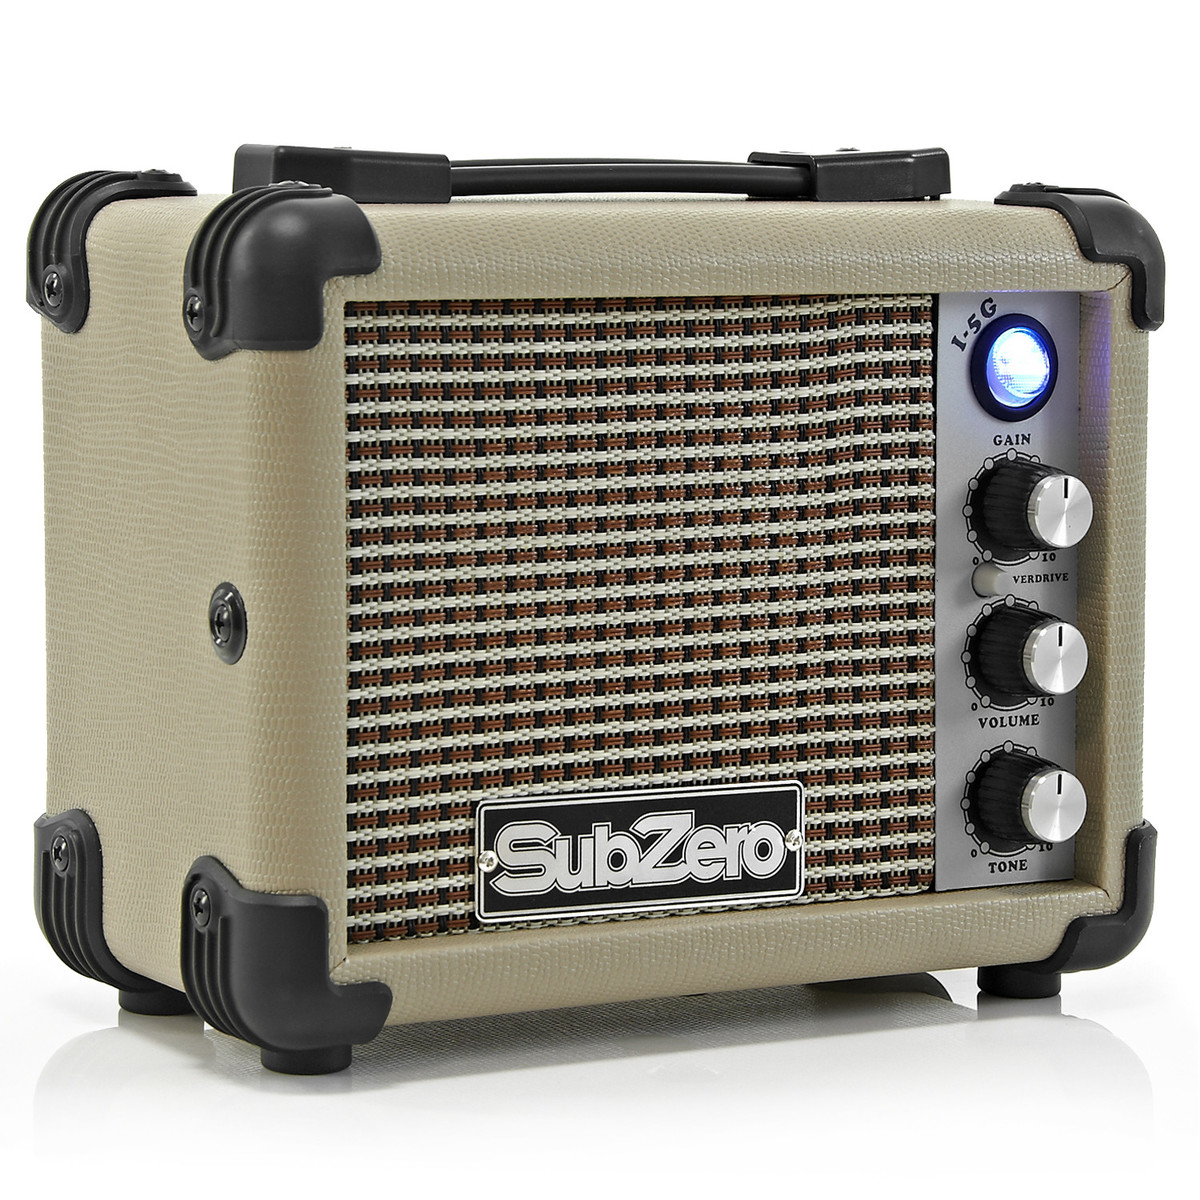 subzero micro electric guitar amp vintage cream b stock at gear4music. Black Bedroom Furniture Sets. Home Design Ideas